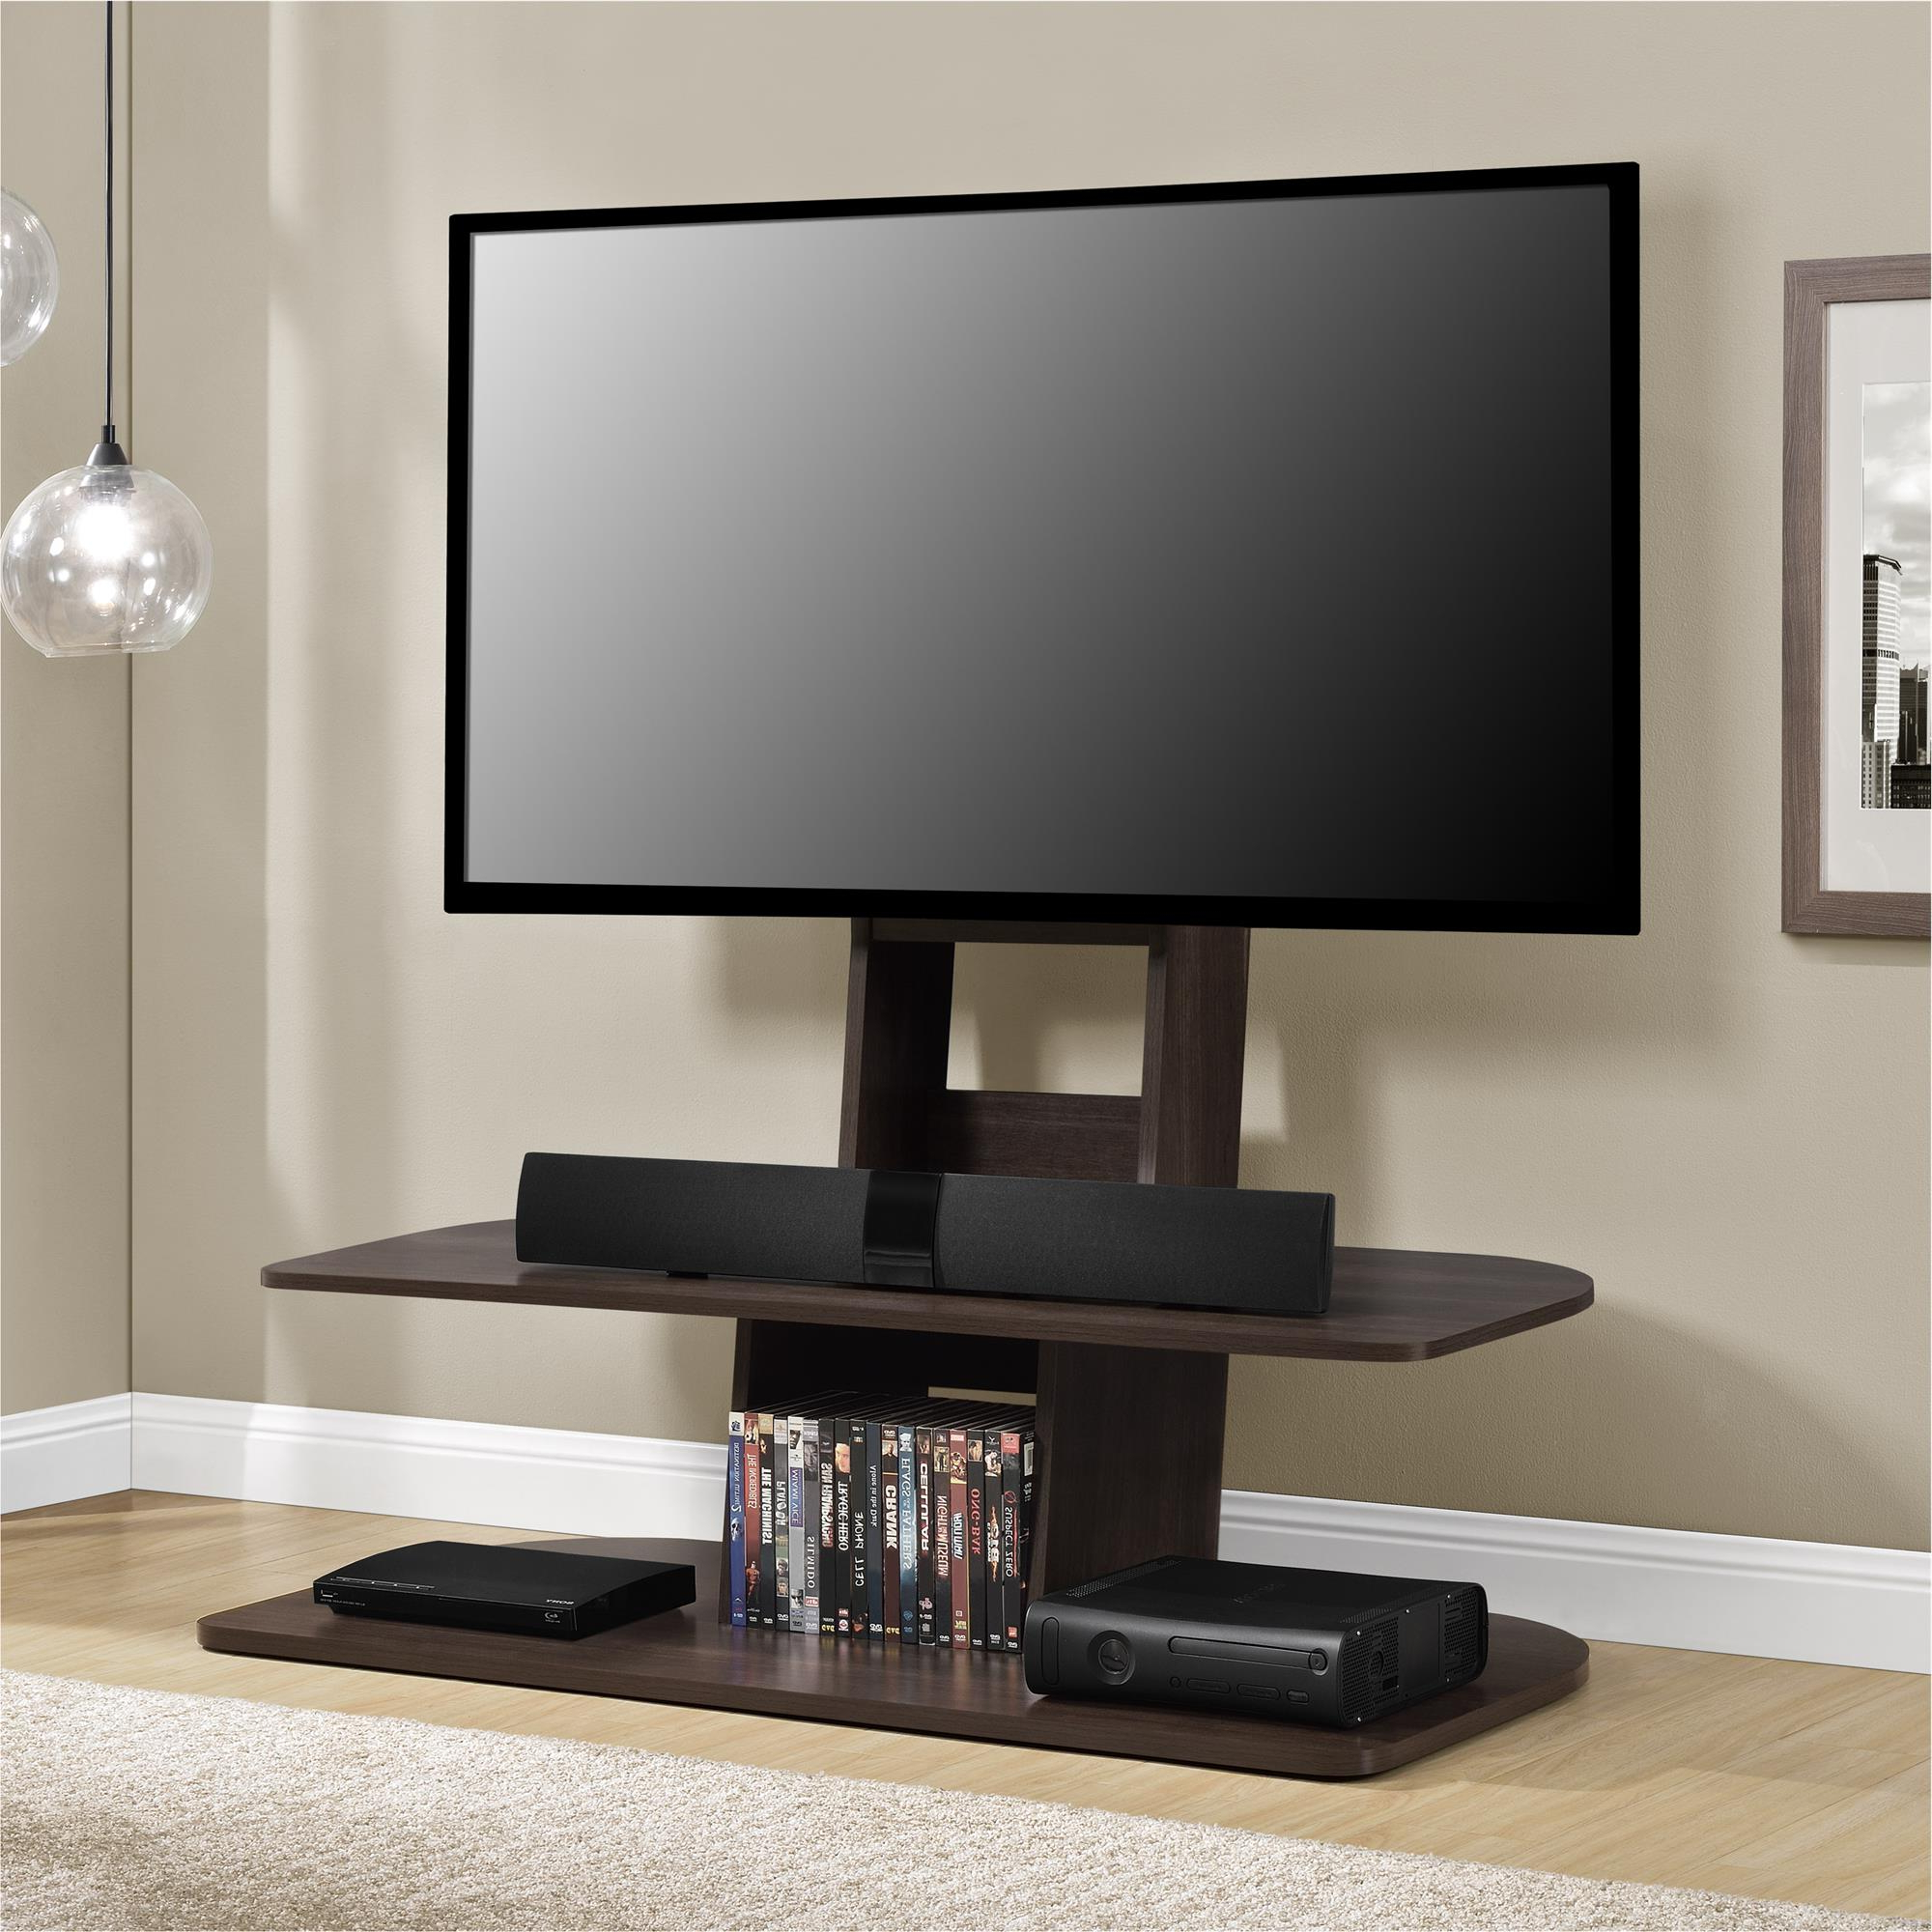 """Preferred Ameriwood Home Galaxy Xl Tv Stand With Mount For Tvs Up 65 With Regard To Shilo Tv Stands For Tvs Up To 65"""" (View 6 of 20)"""